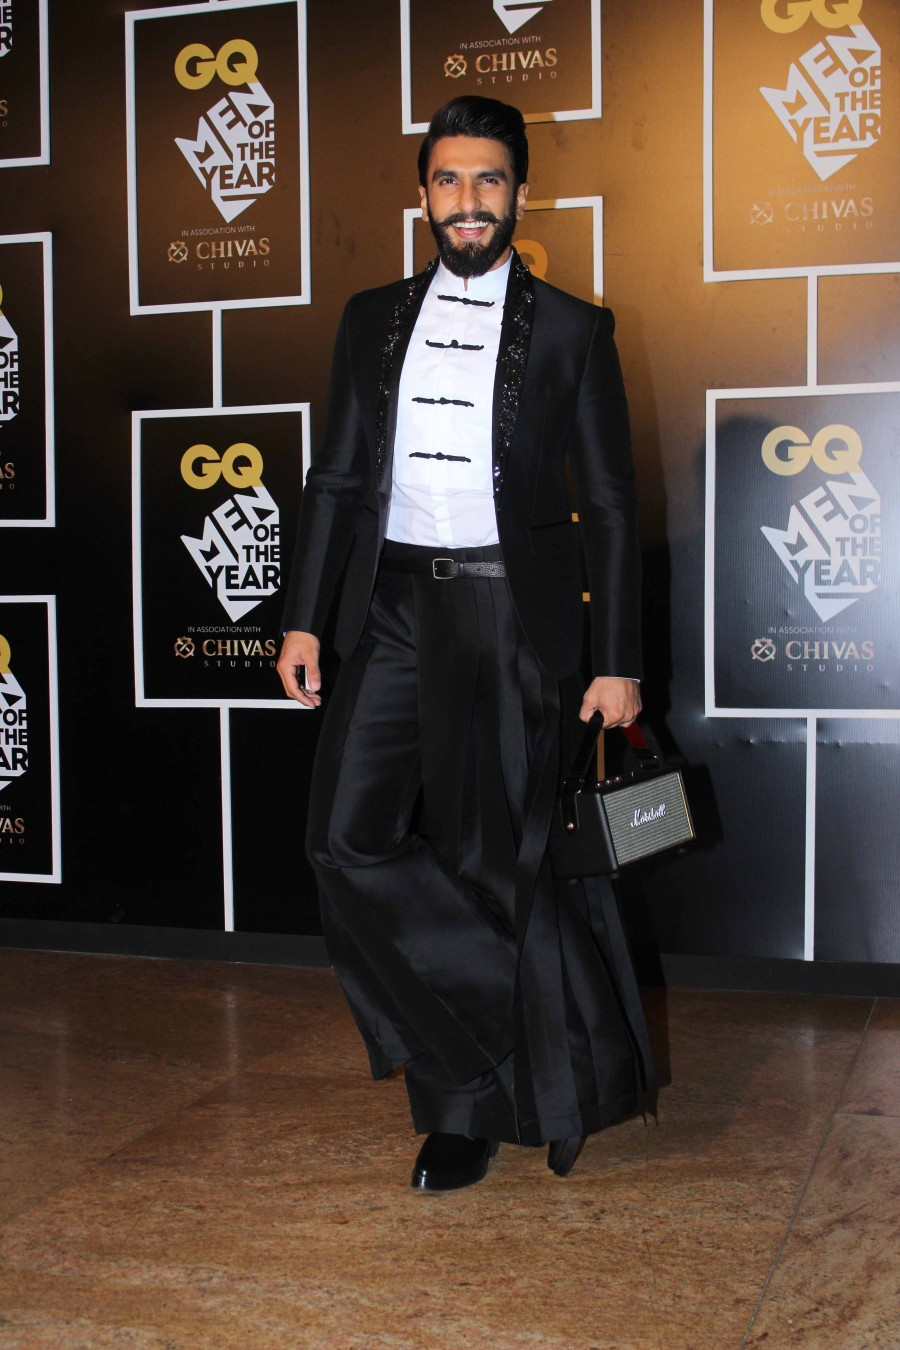 Ranveer Singh,actor Ranveer Singh,Ranveer Singh at GQ Men of the Year Awards,GQ Men of the Year Awards,GQ Men of the Year Awards 2016,Ranveer Singh pics,Ranveer Singh images,Ranveer Singh photos,Ranveer Singh stills,Ranveer Singh pictures